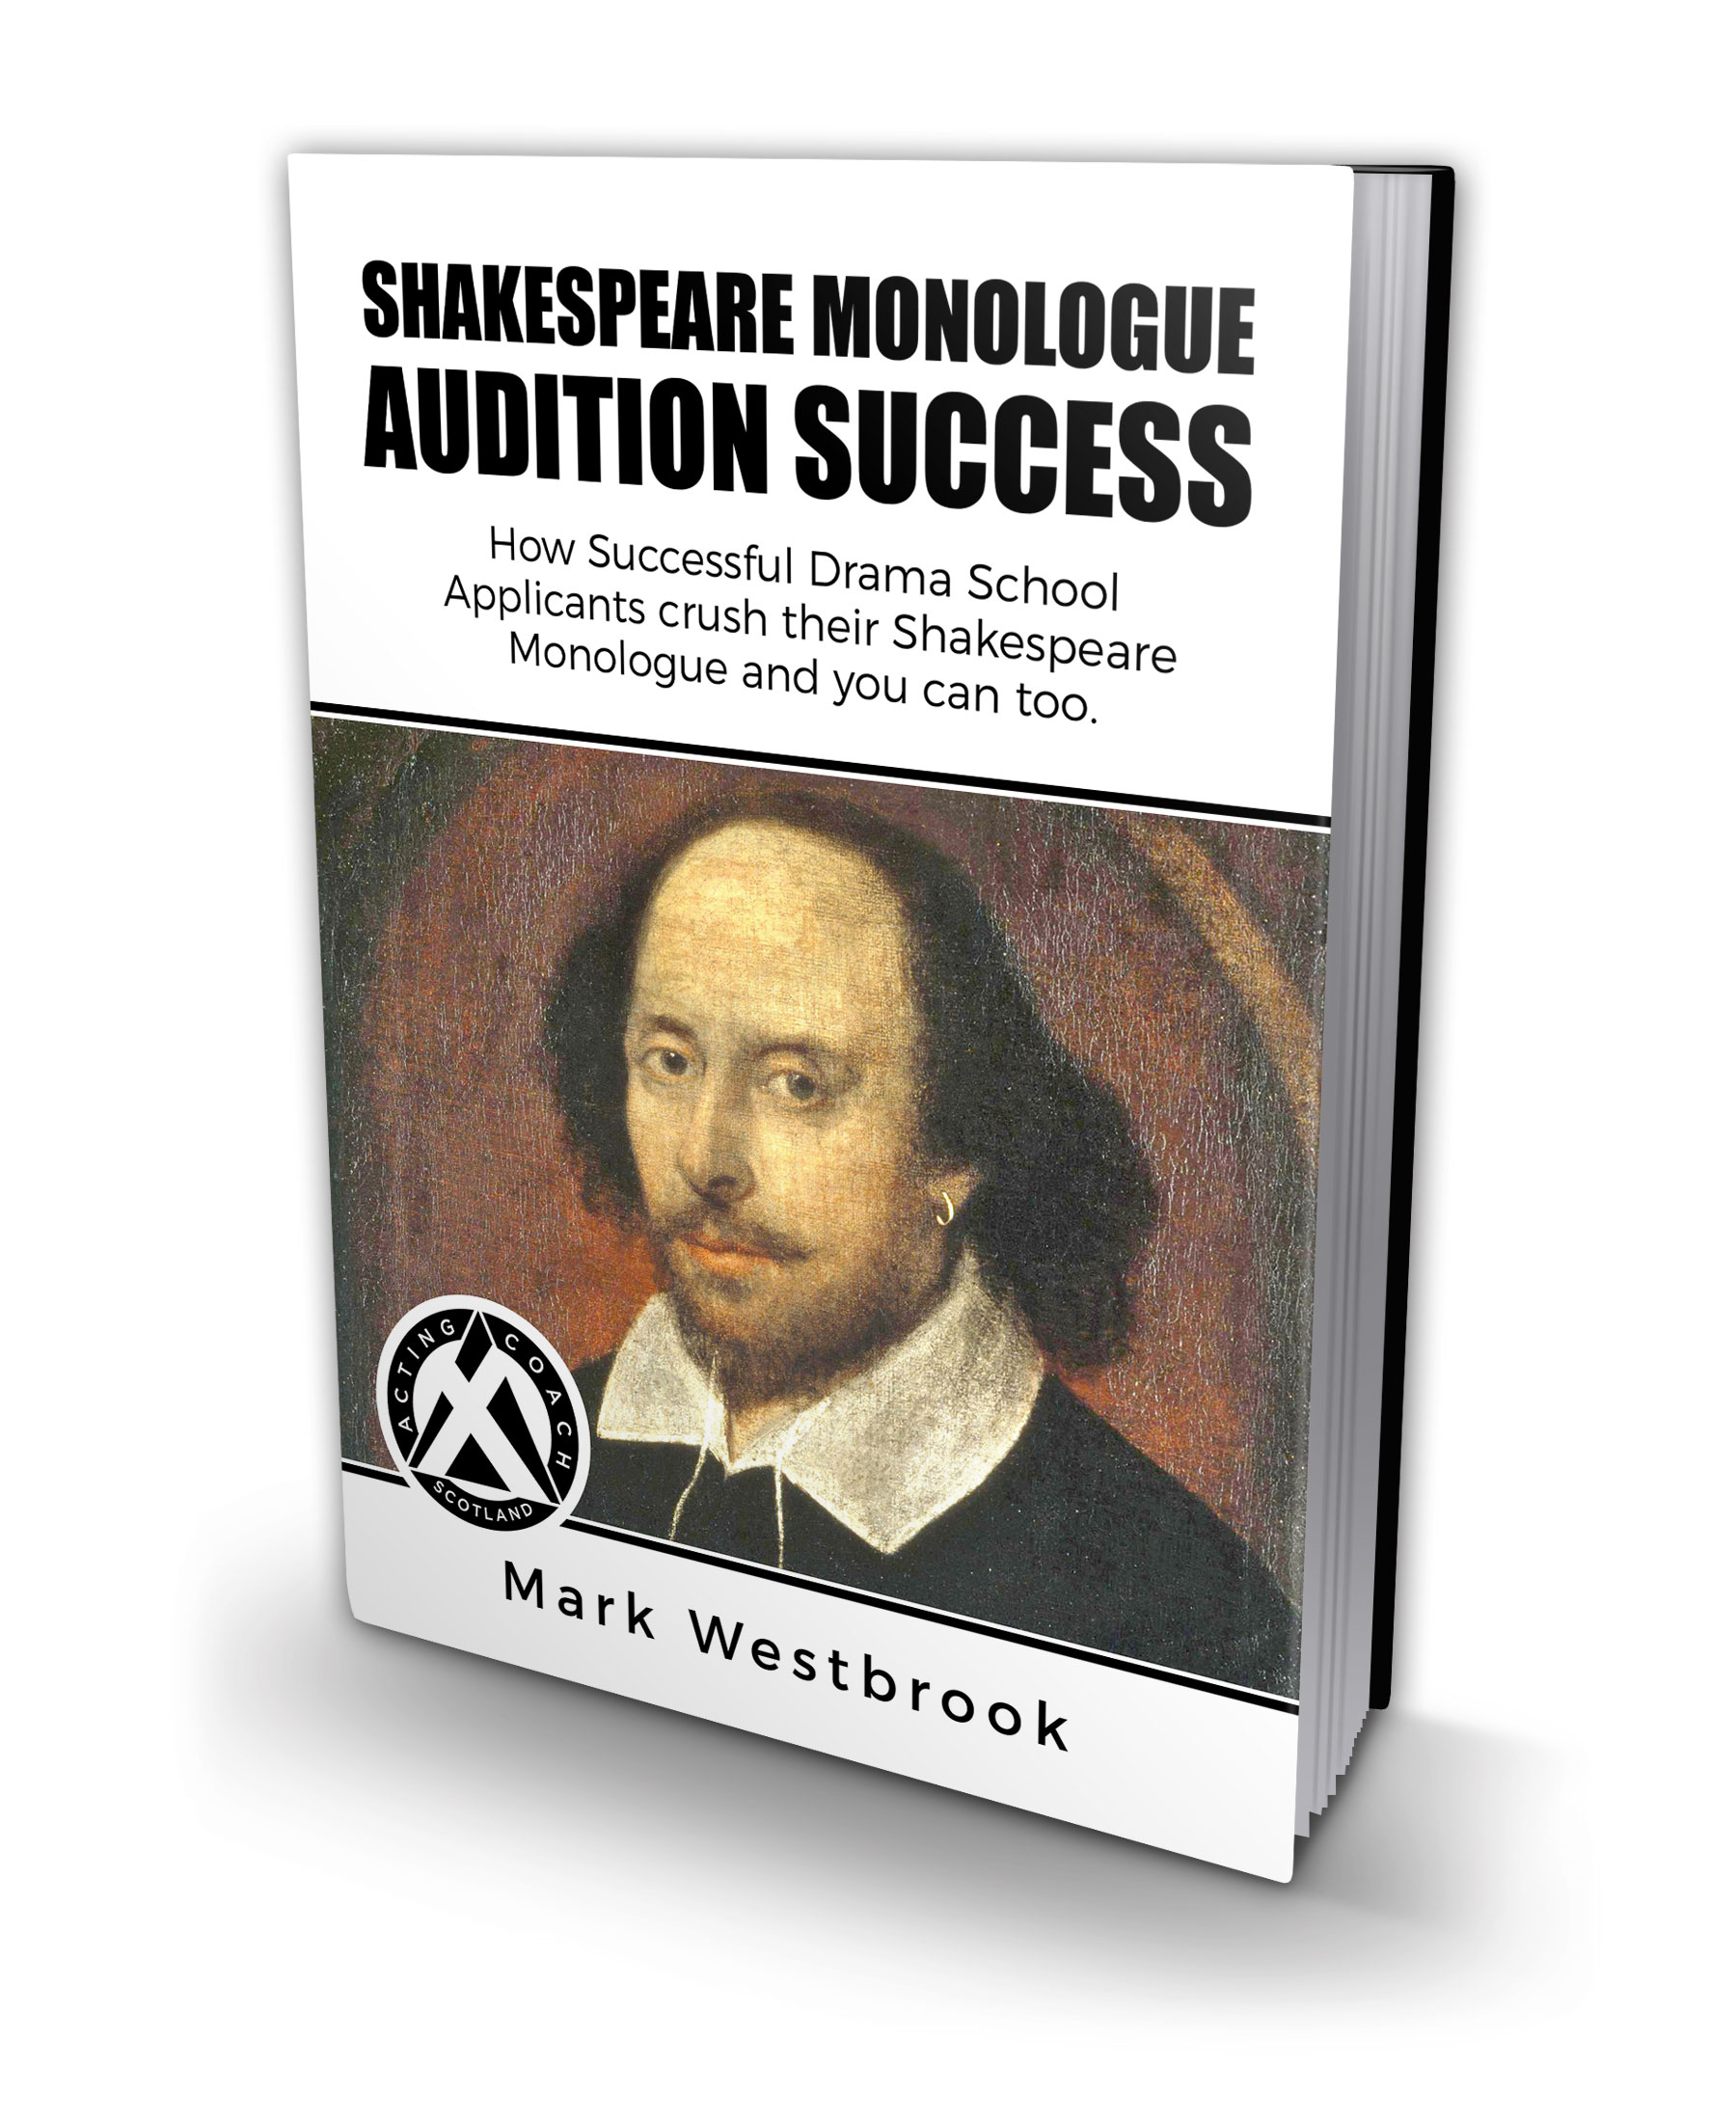 Top Monologue Mistakes and Solutions